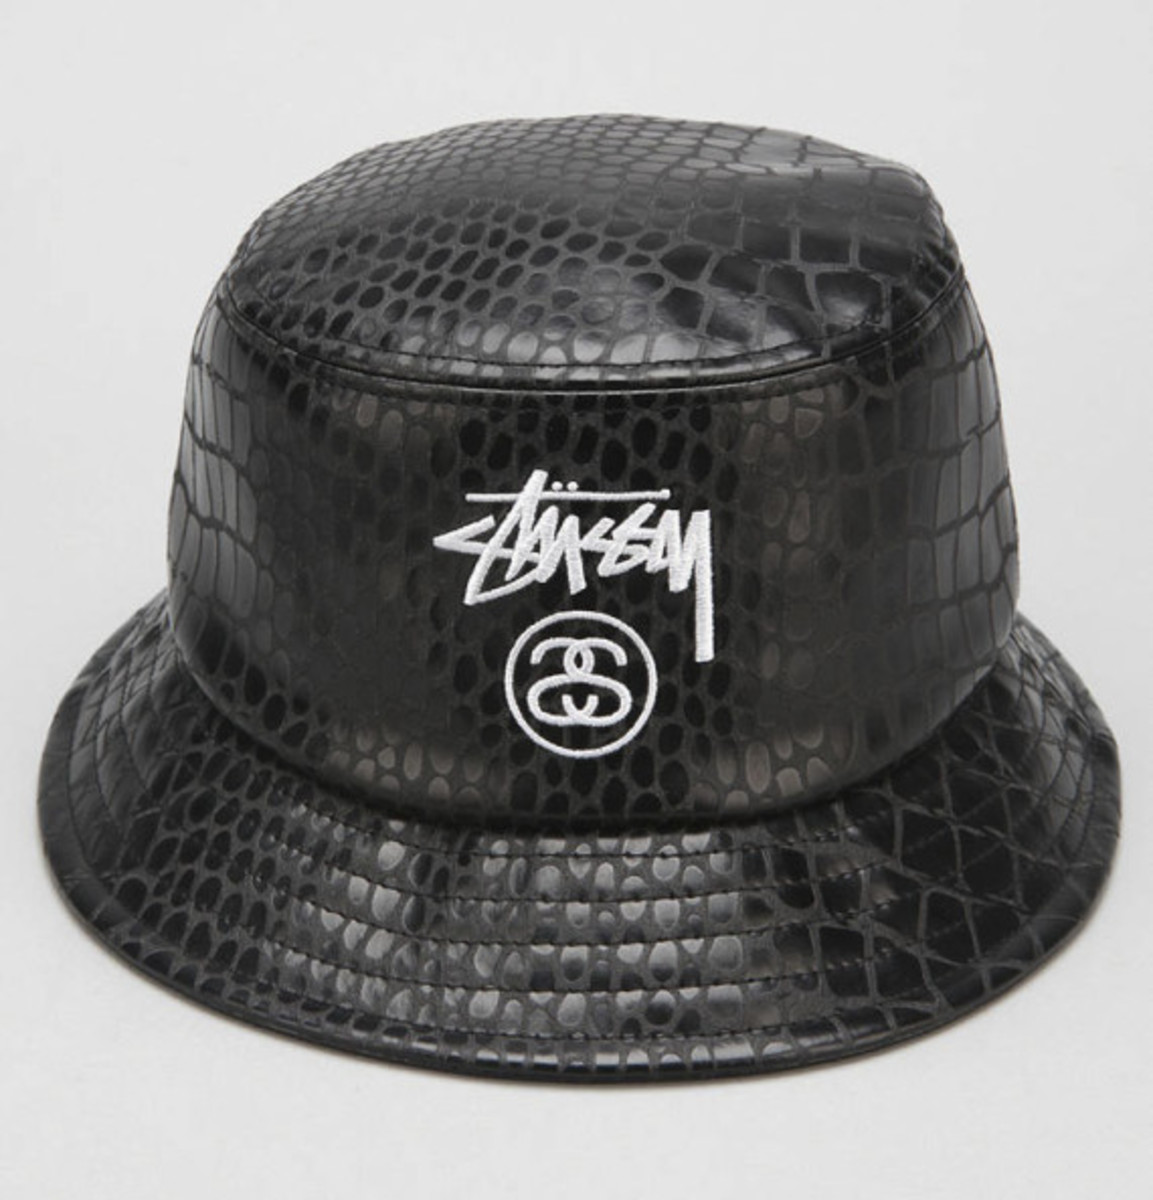 stussy-croc-faux-leather-bucket-hat-urban-outfitters-exclusive-01